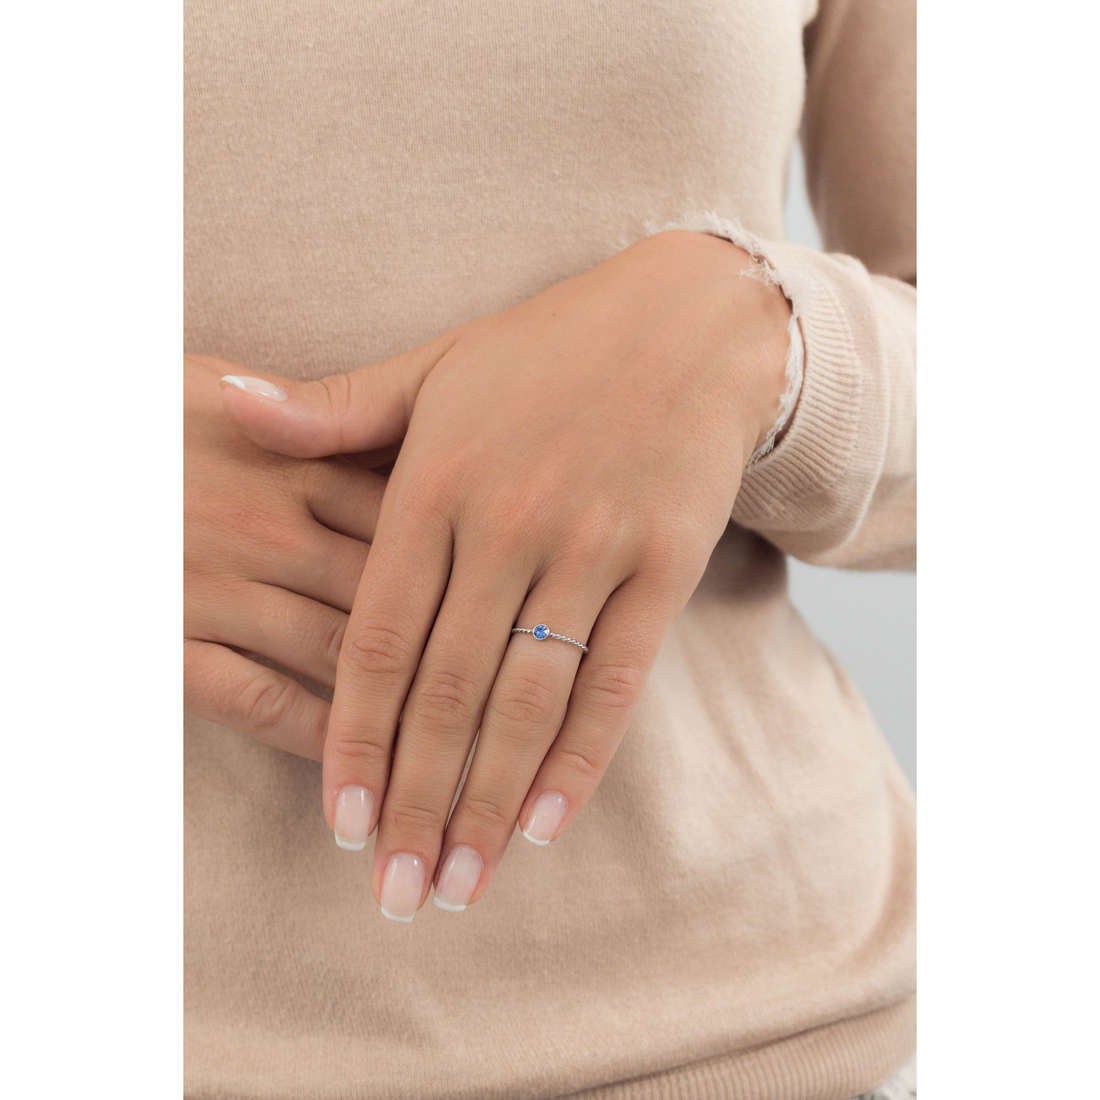 Marlù rings Time To woman 18AN046B-S indosso